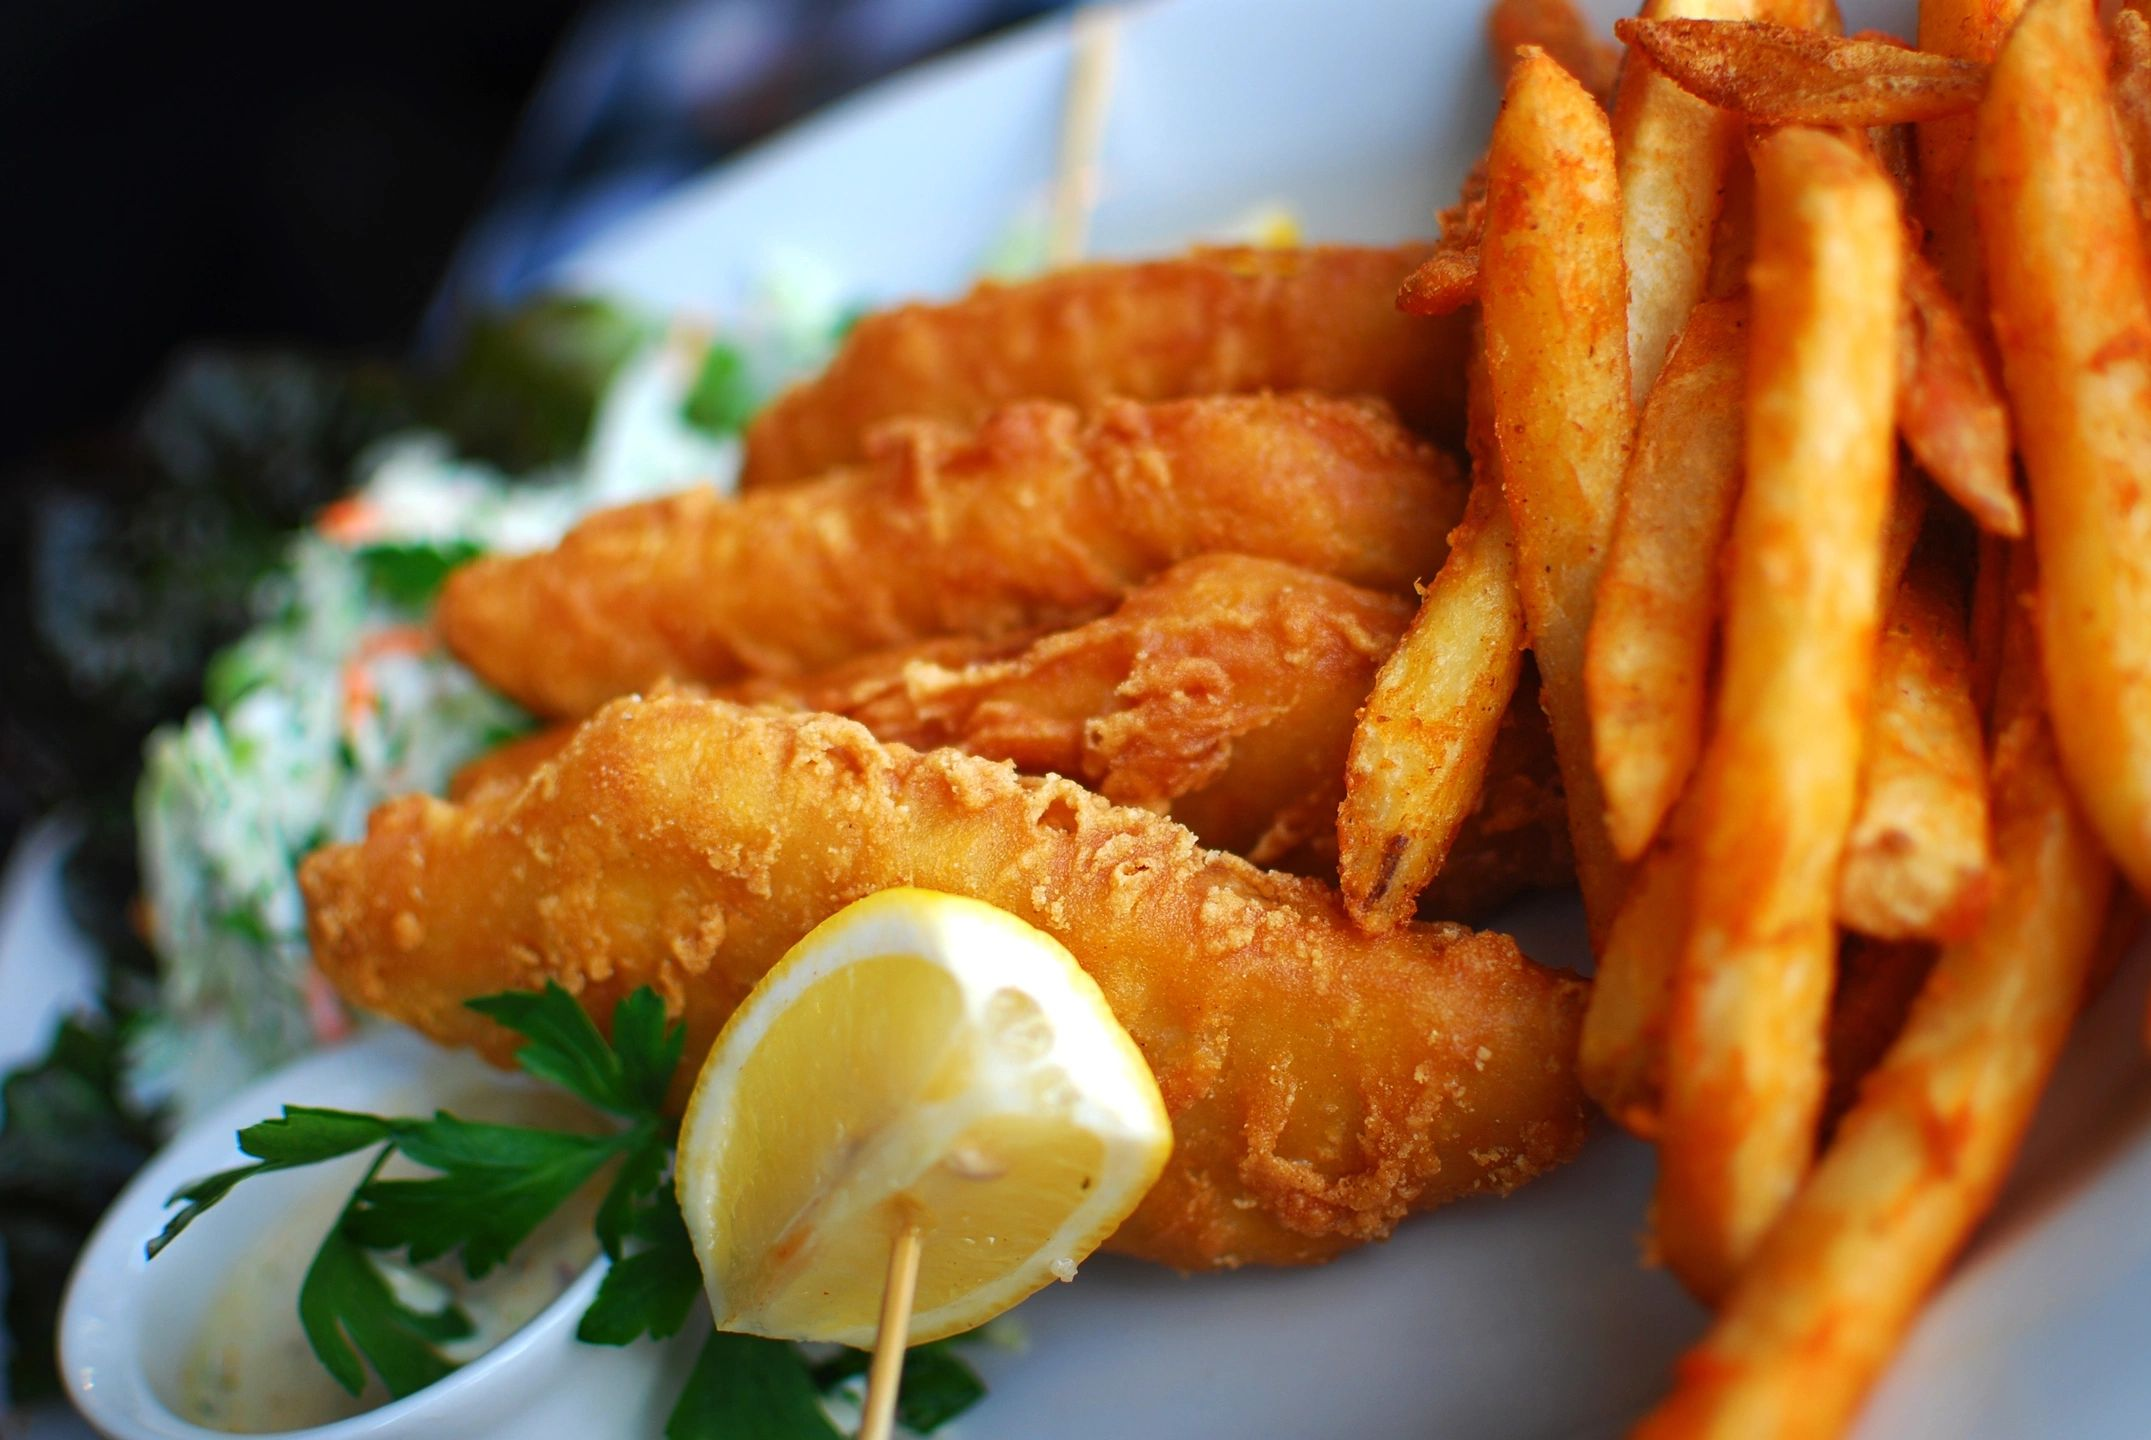 Local Fish Fryes Change Plans